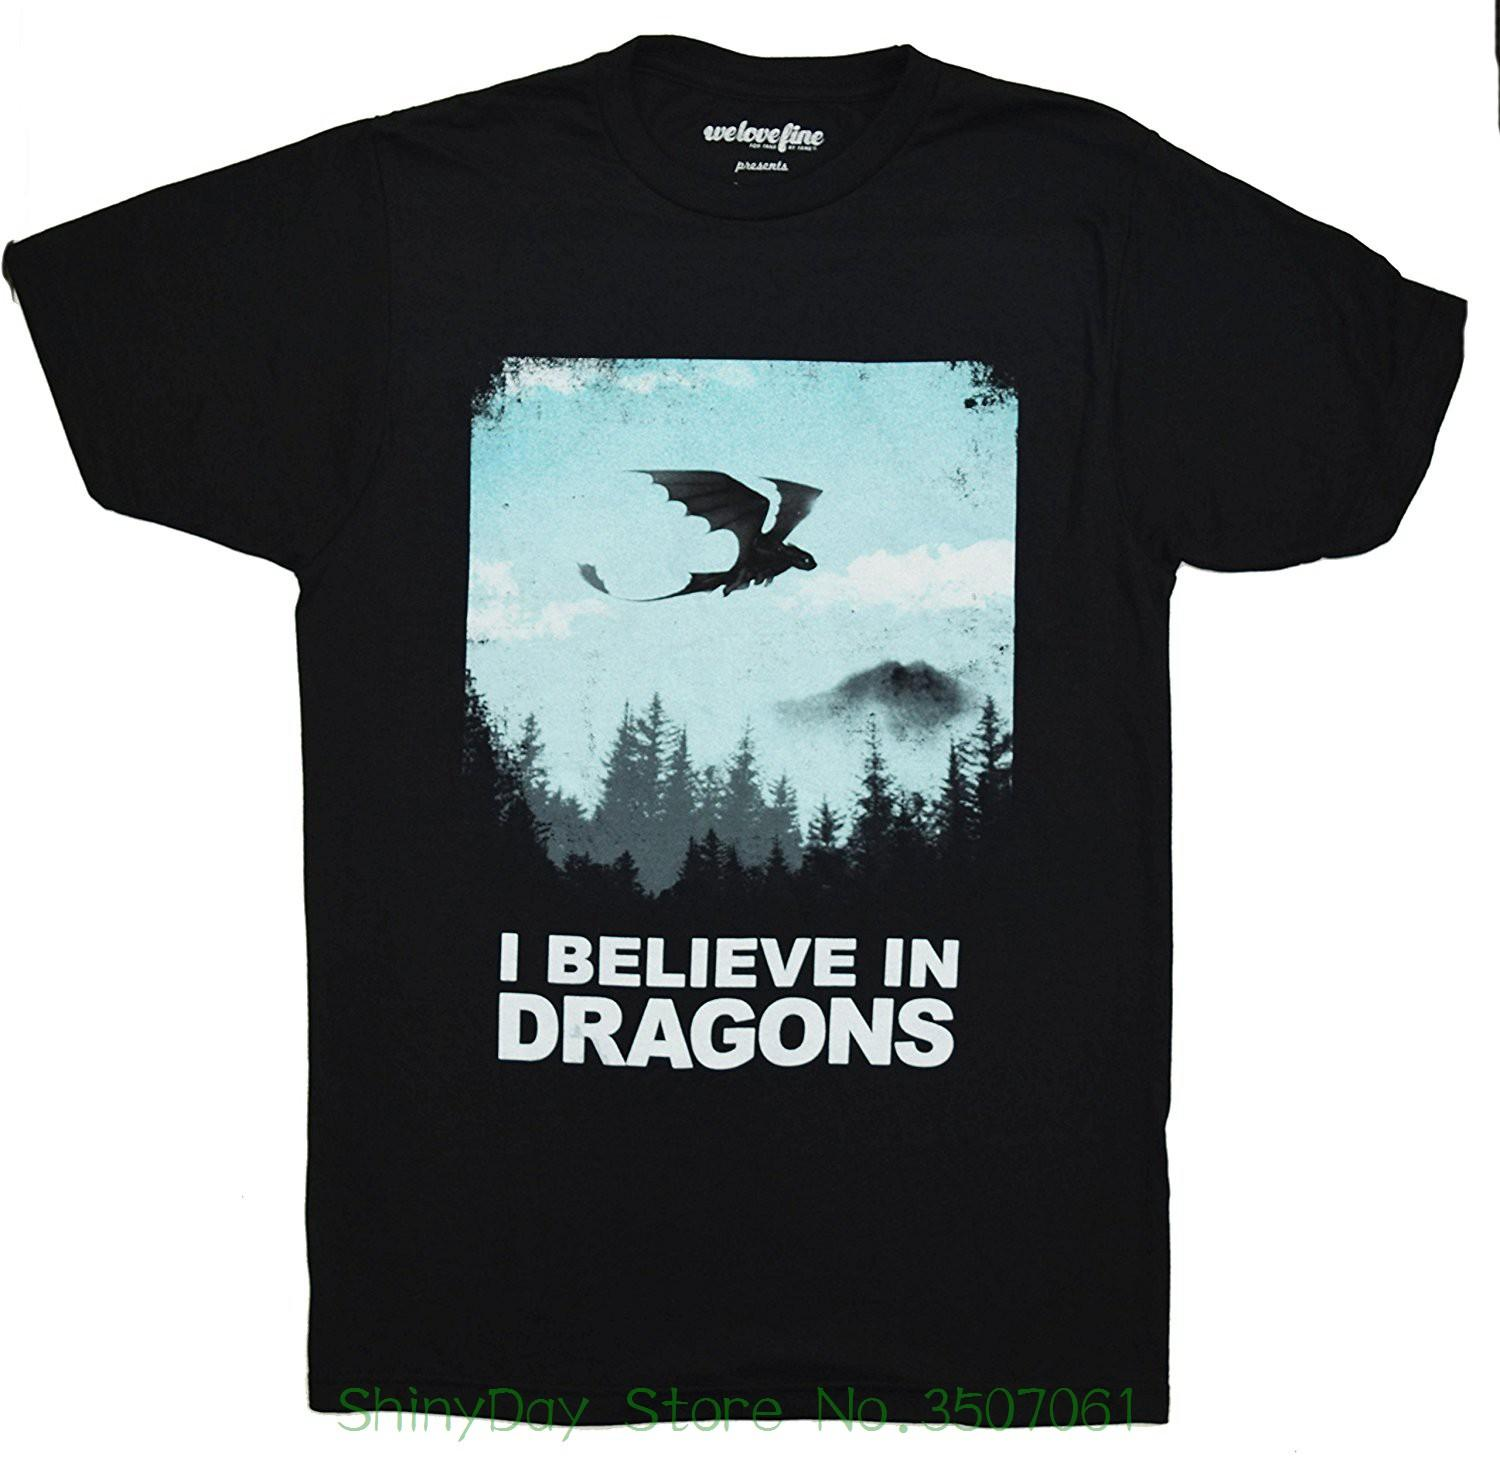 4325a4e6 Tee Shirt Mens 2018 New Tee Shirts Printing Dreamworks How To Train Your  Dragon Want To Believe T Shirt Rude T Shirts Shirt Online From  Shinydaystore, ...